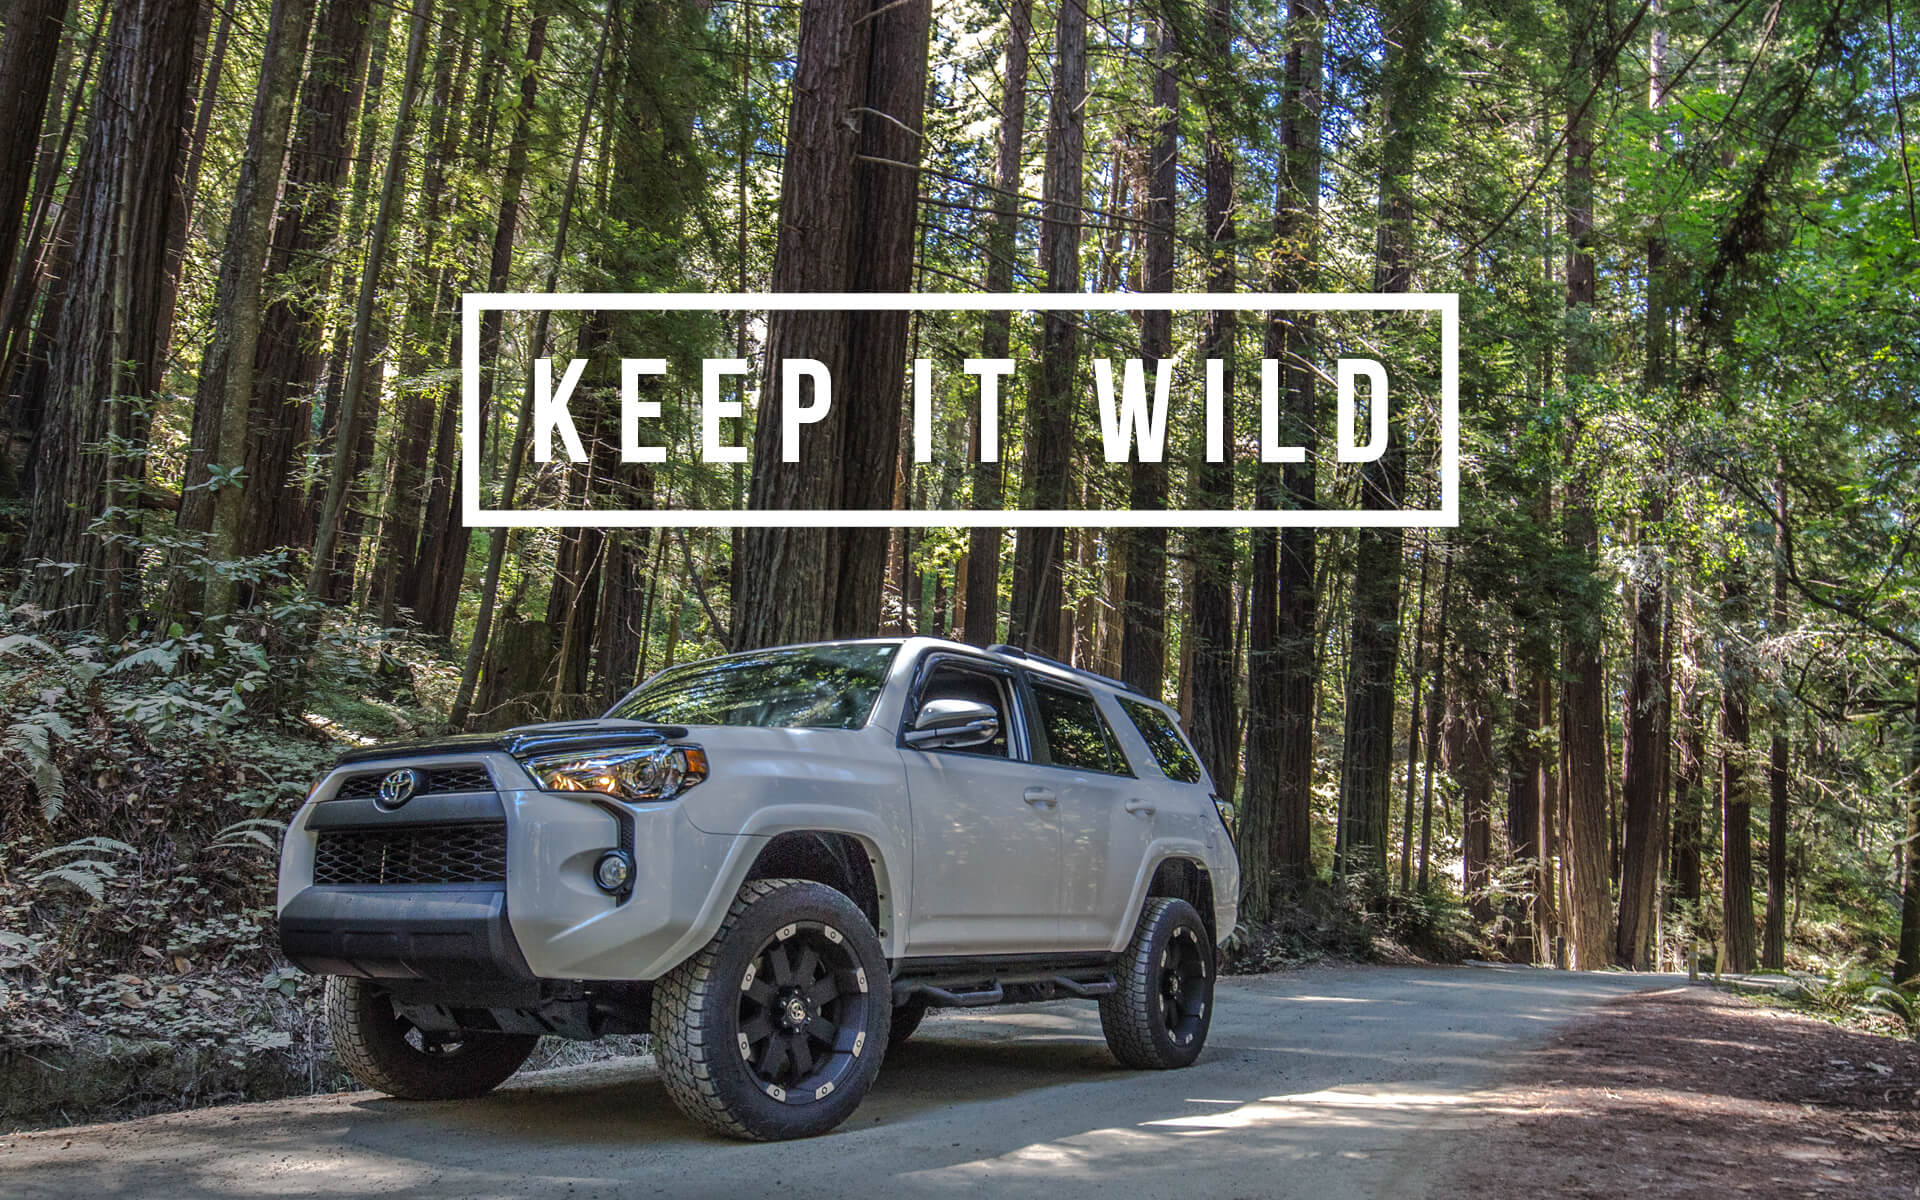 TRD PRO Wallpaper Background - Keep It Wild